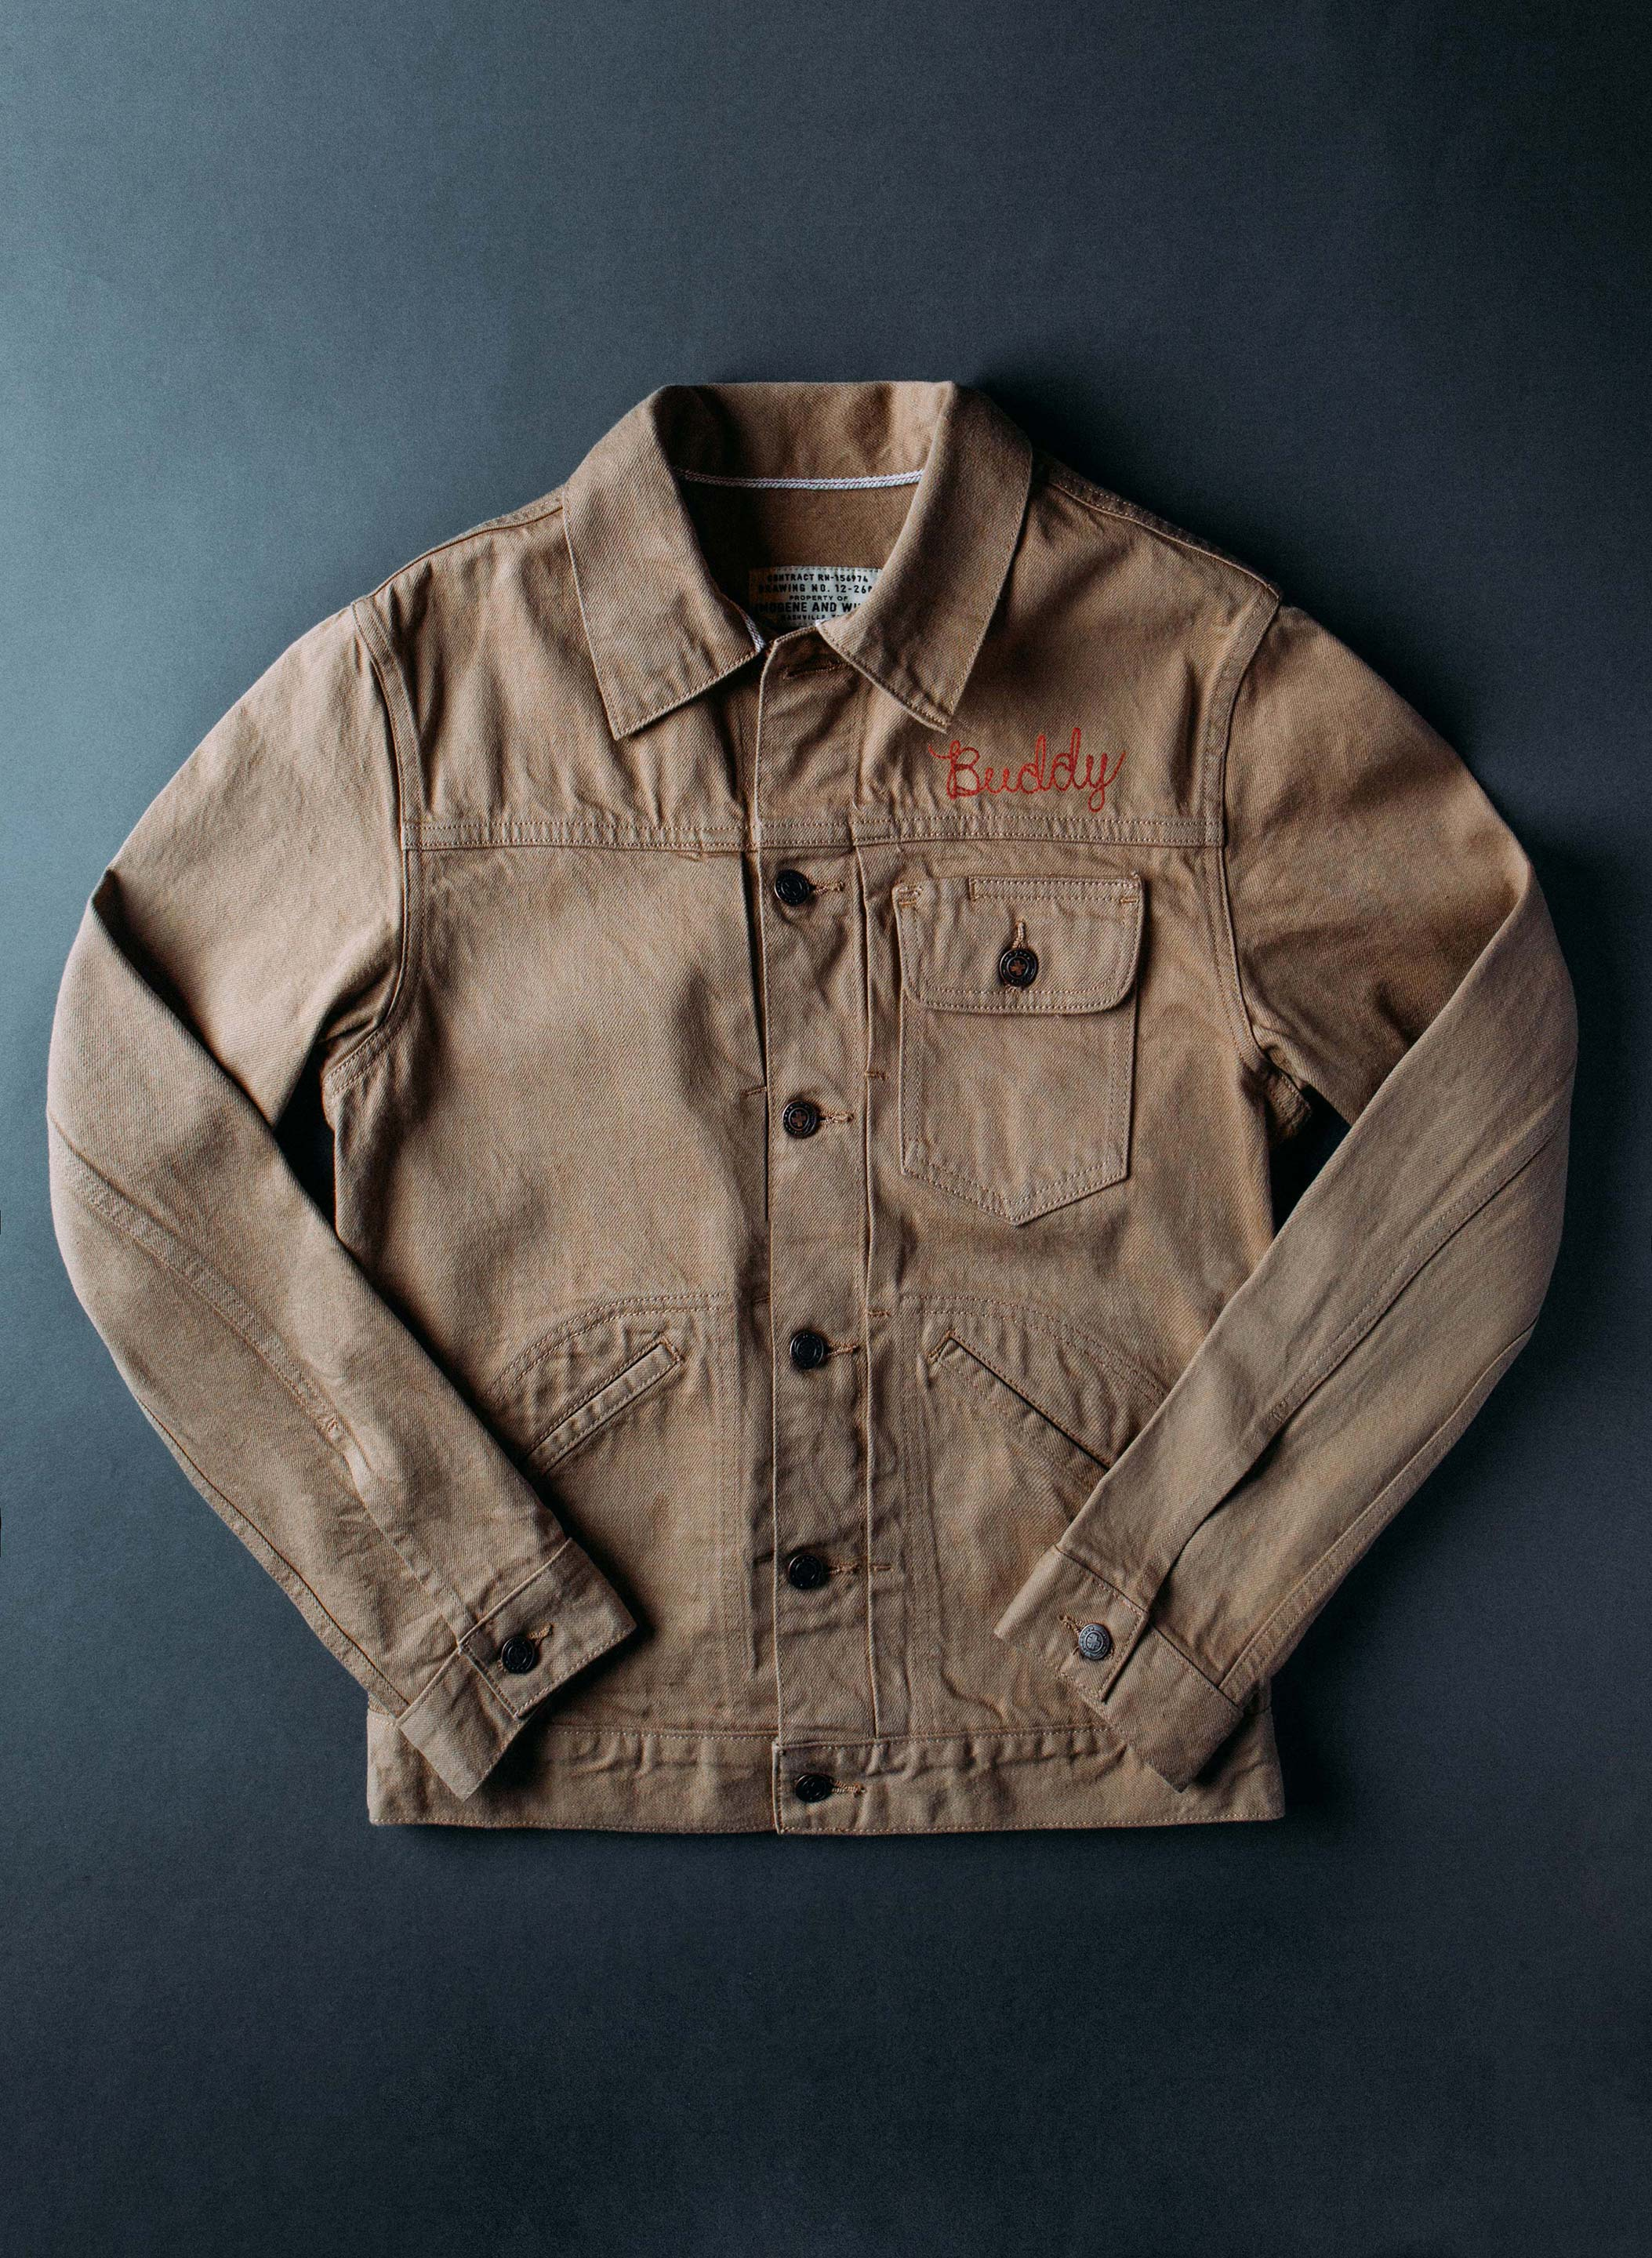 imogene + willie - chainstitch barnes selvage jacket